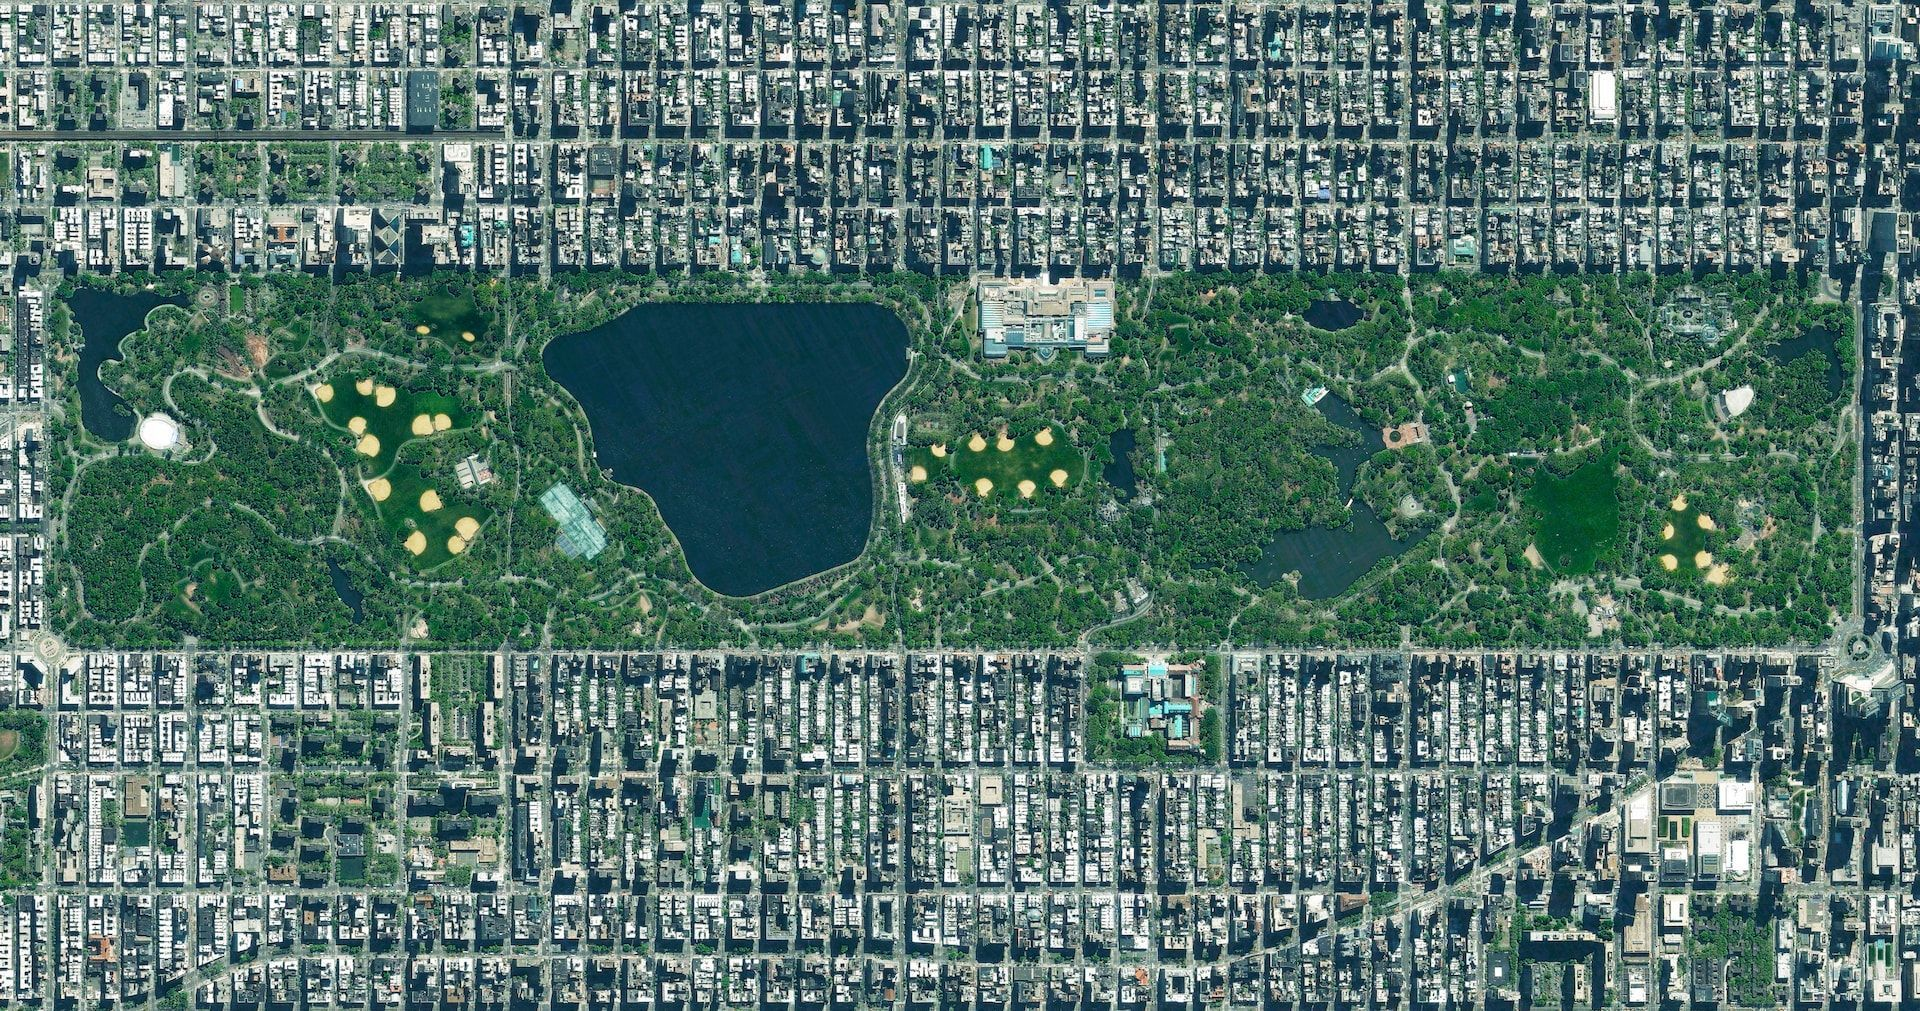 Central Park, New York City, USA Earth from space